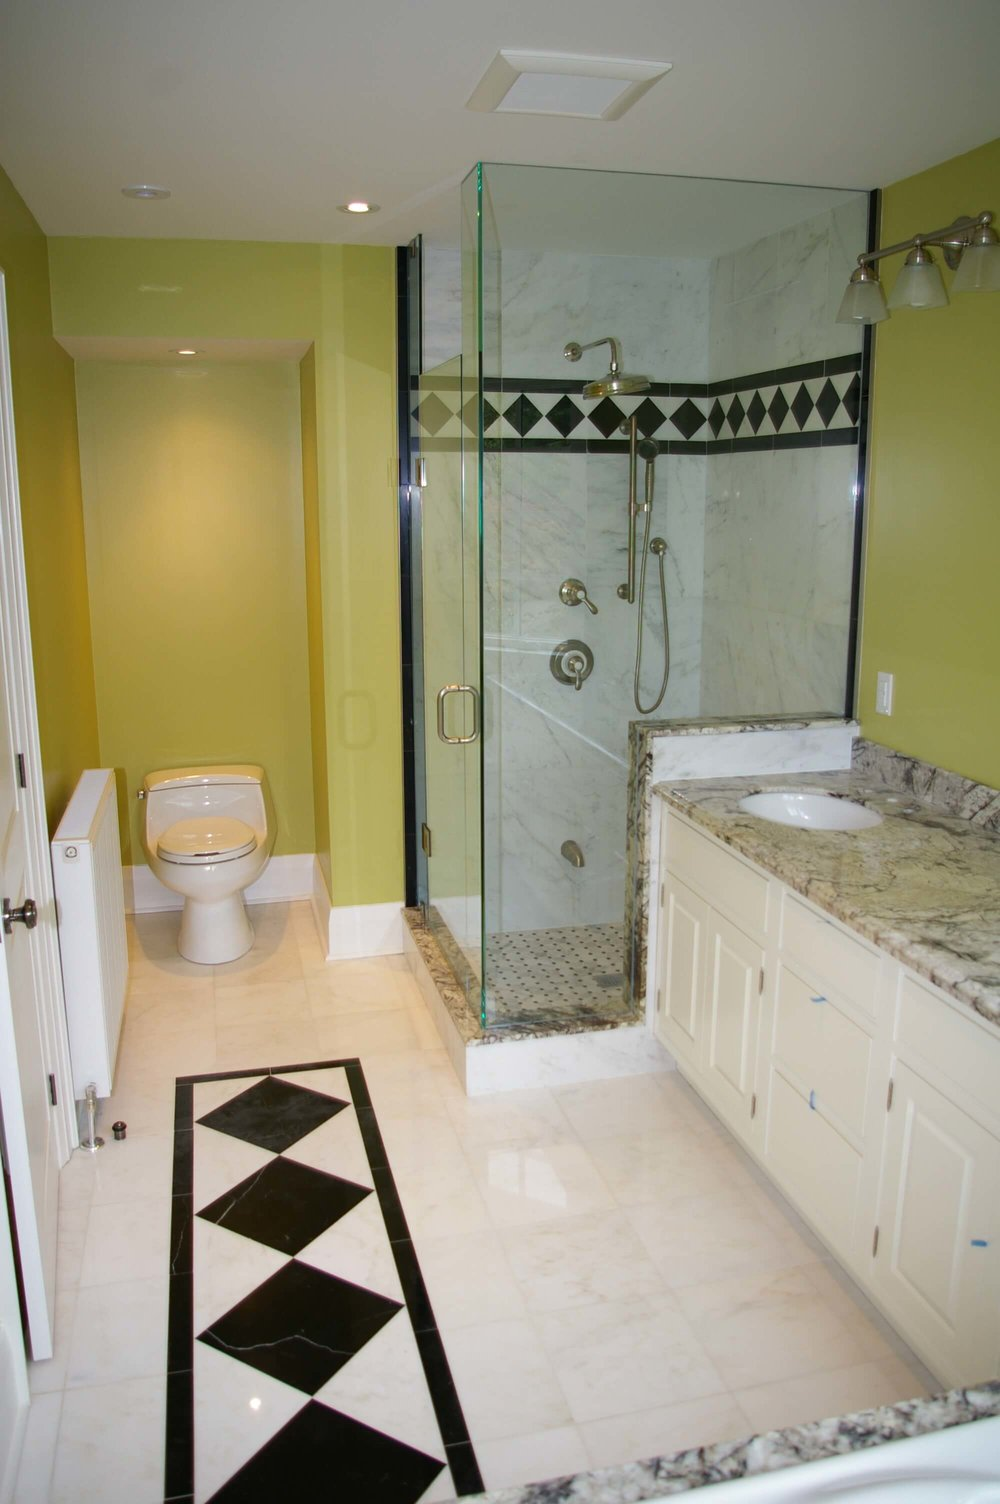 bathroom-renovation-ideas-tile-floor.jpg